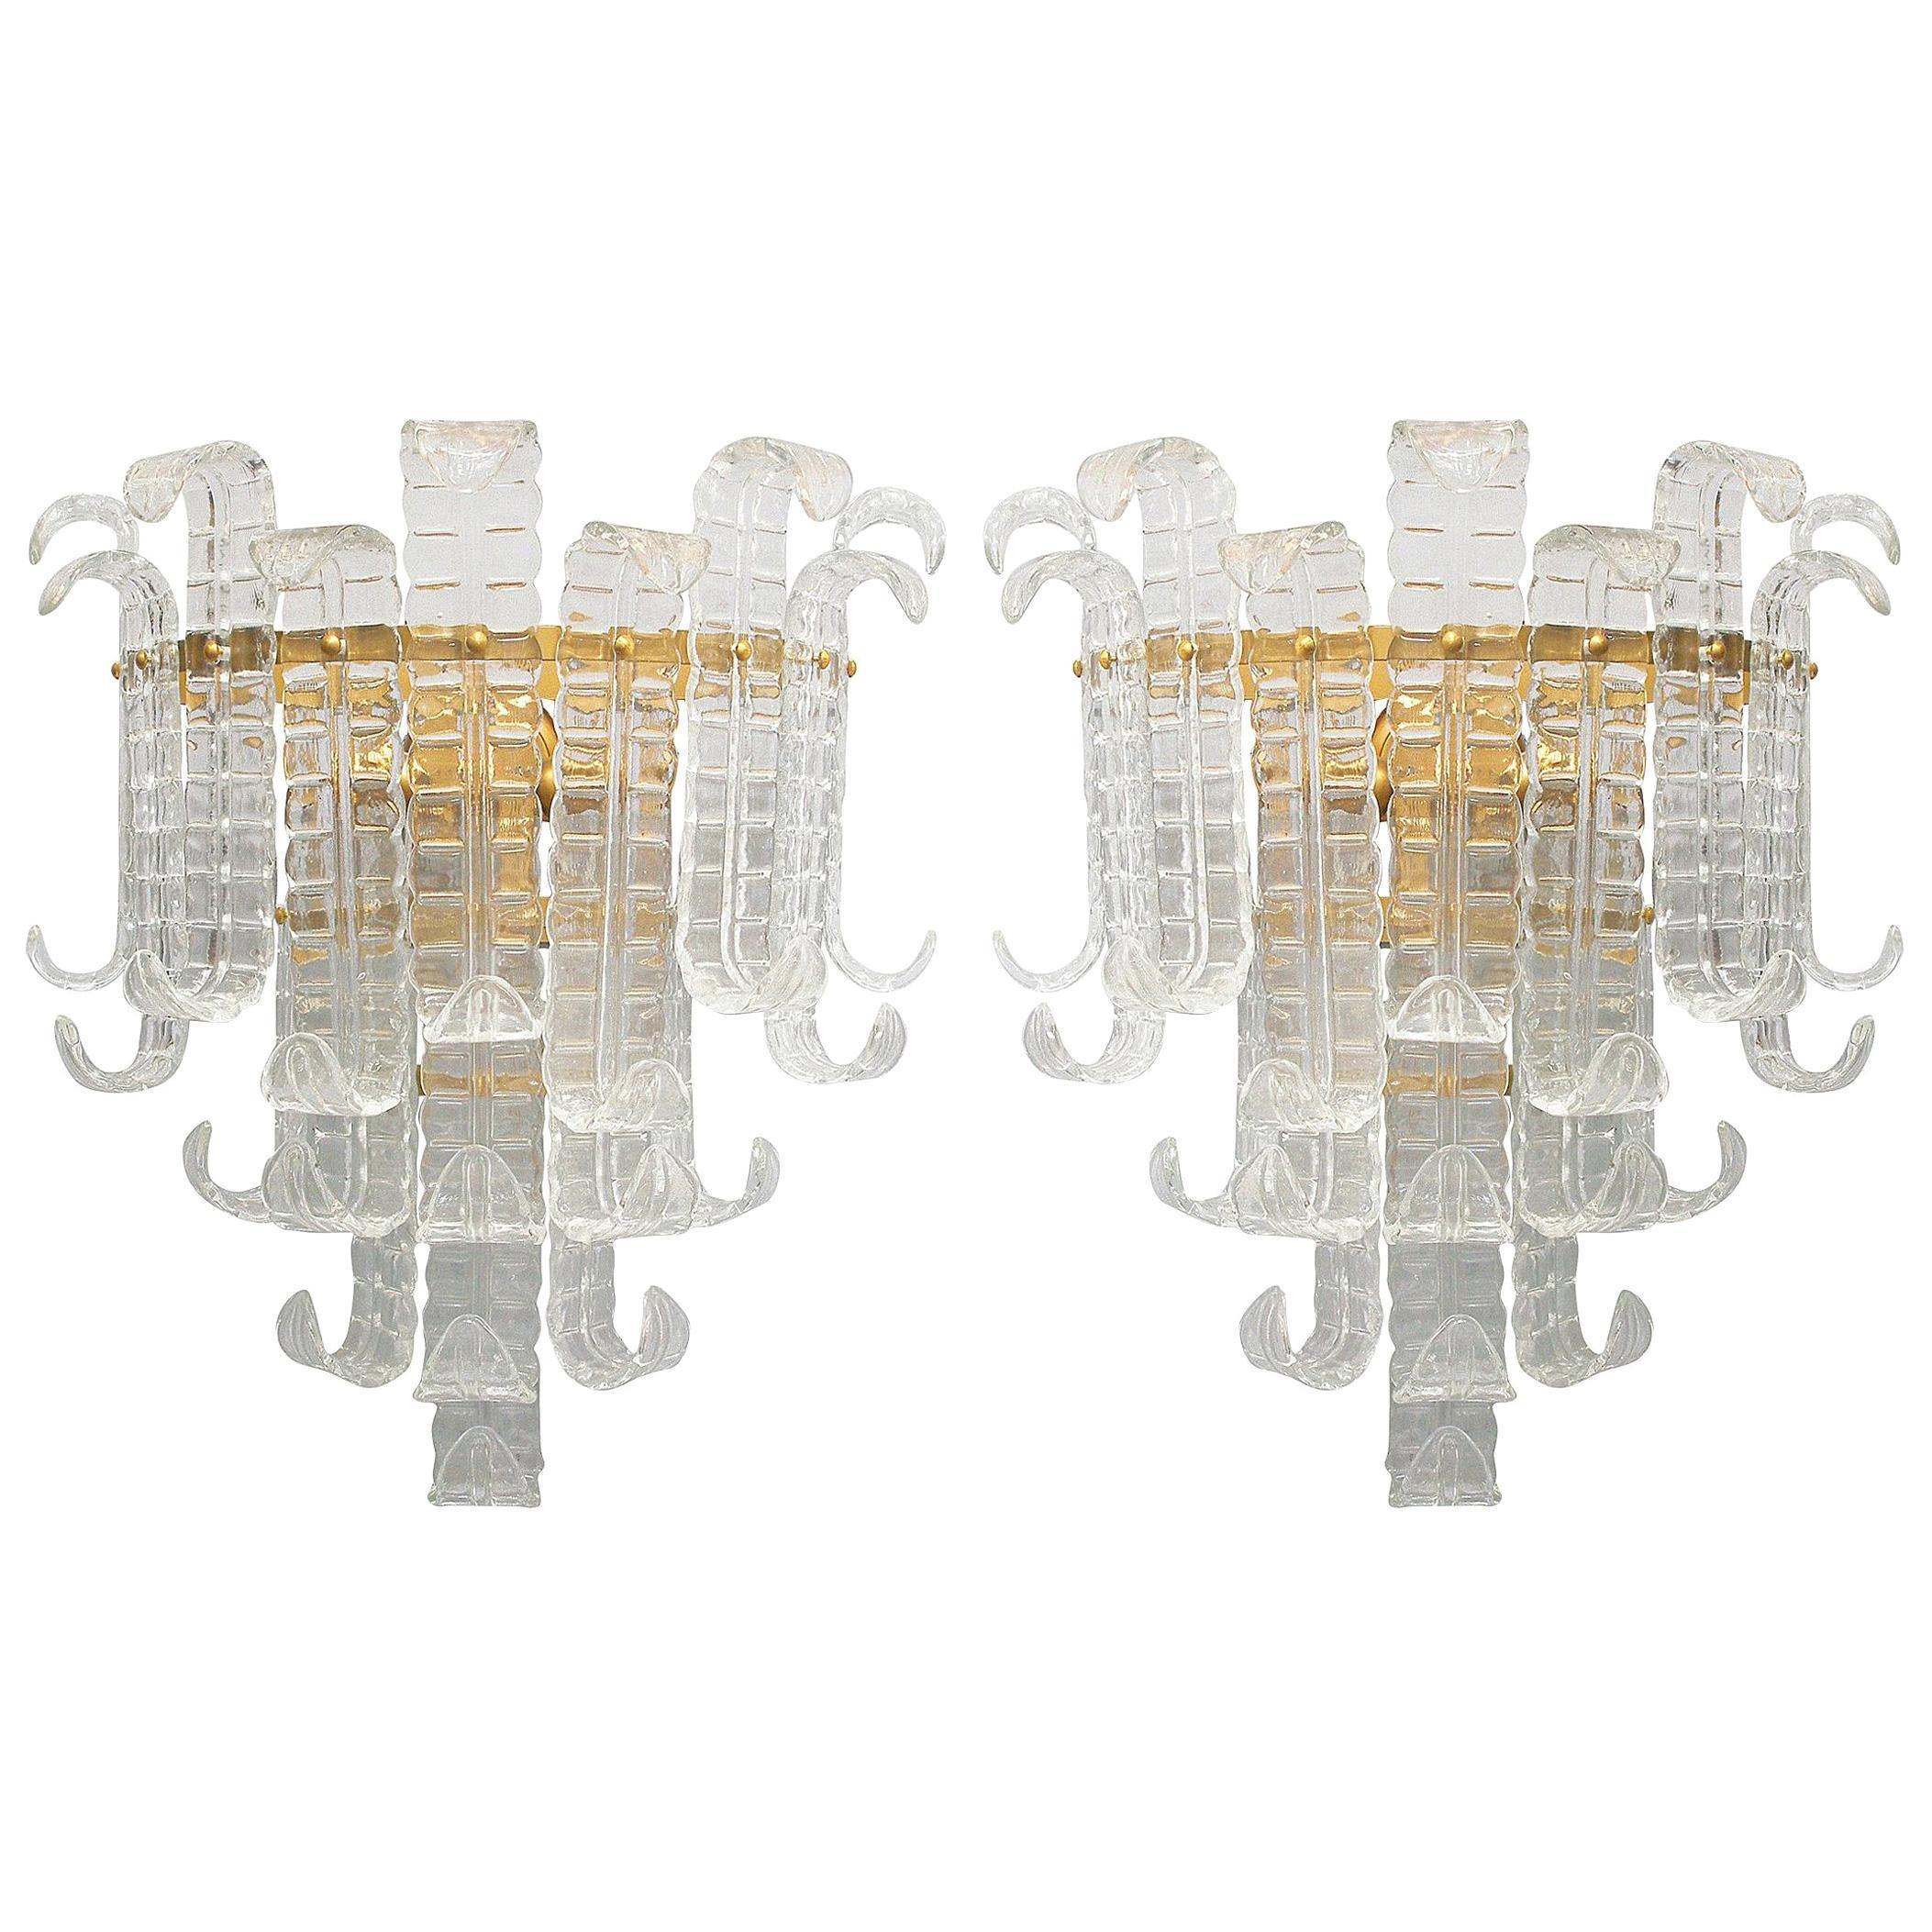 Pair of Vintage Italian Sconces Clear Murano Glass Designed by Barovier e Toso